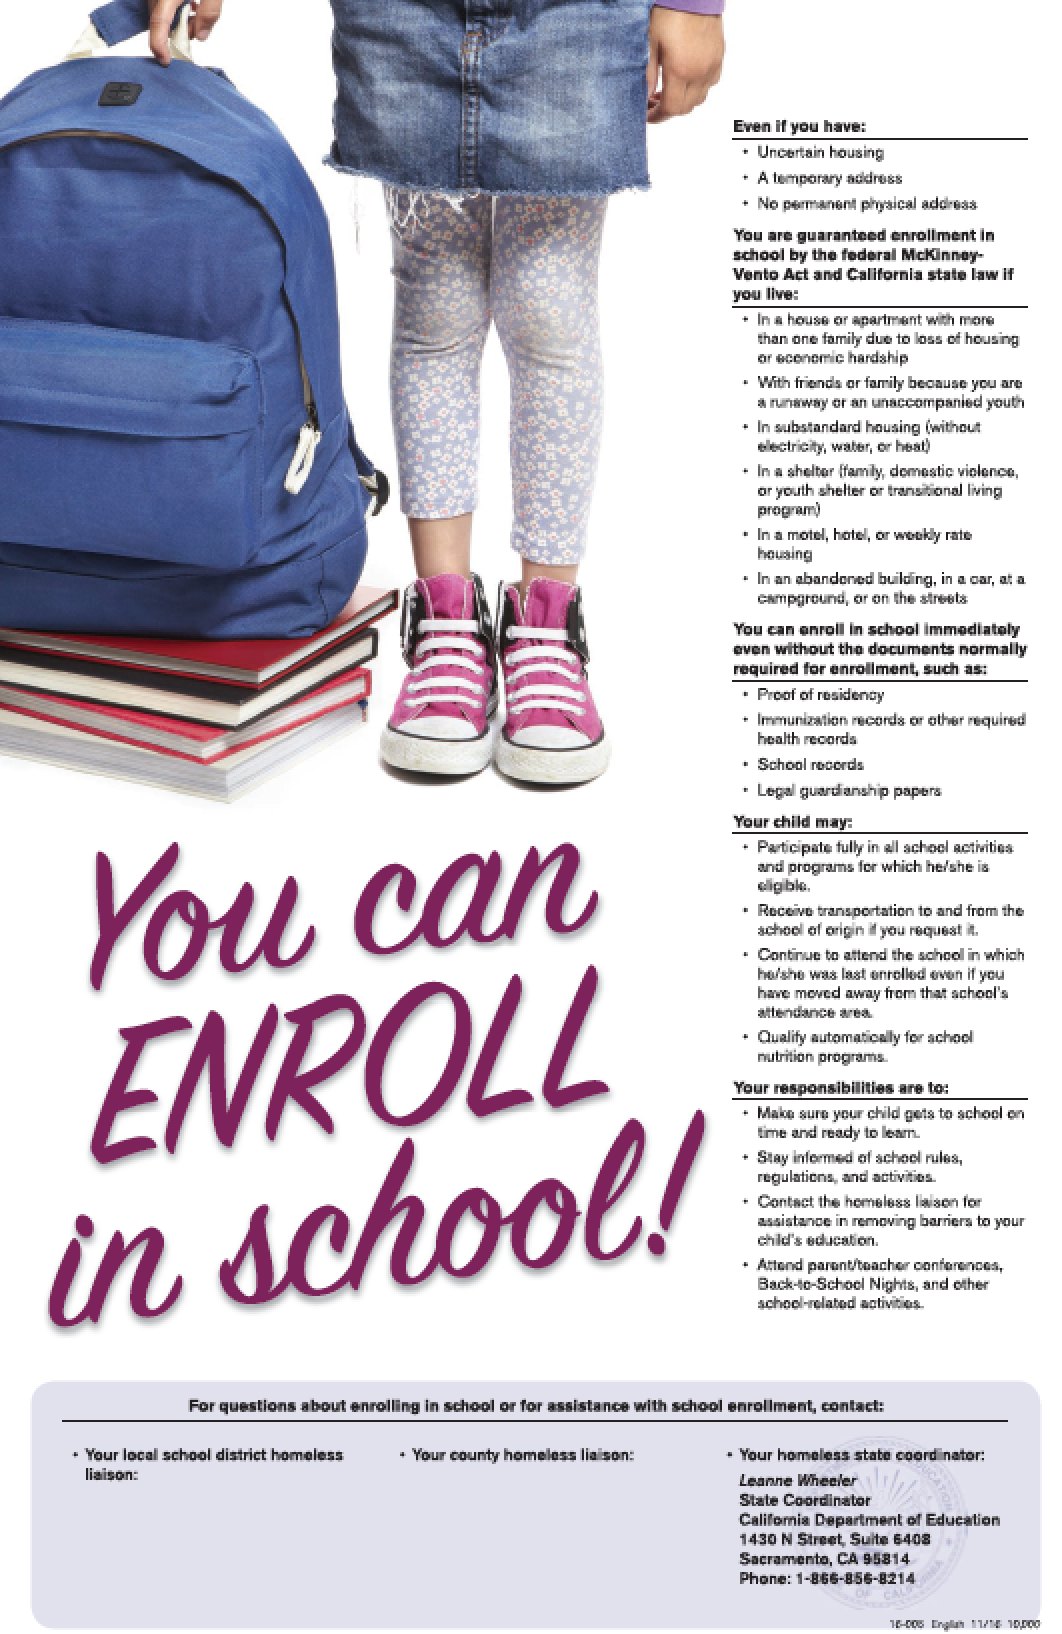 You can enroll McKinney Vento poster